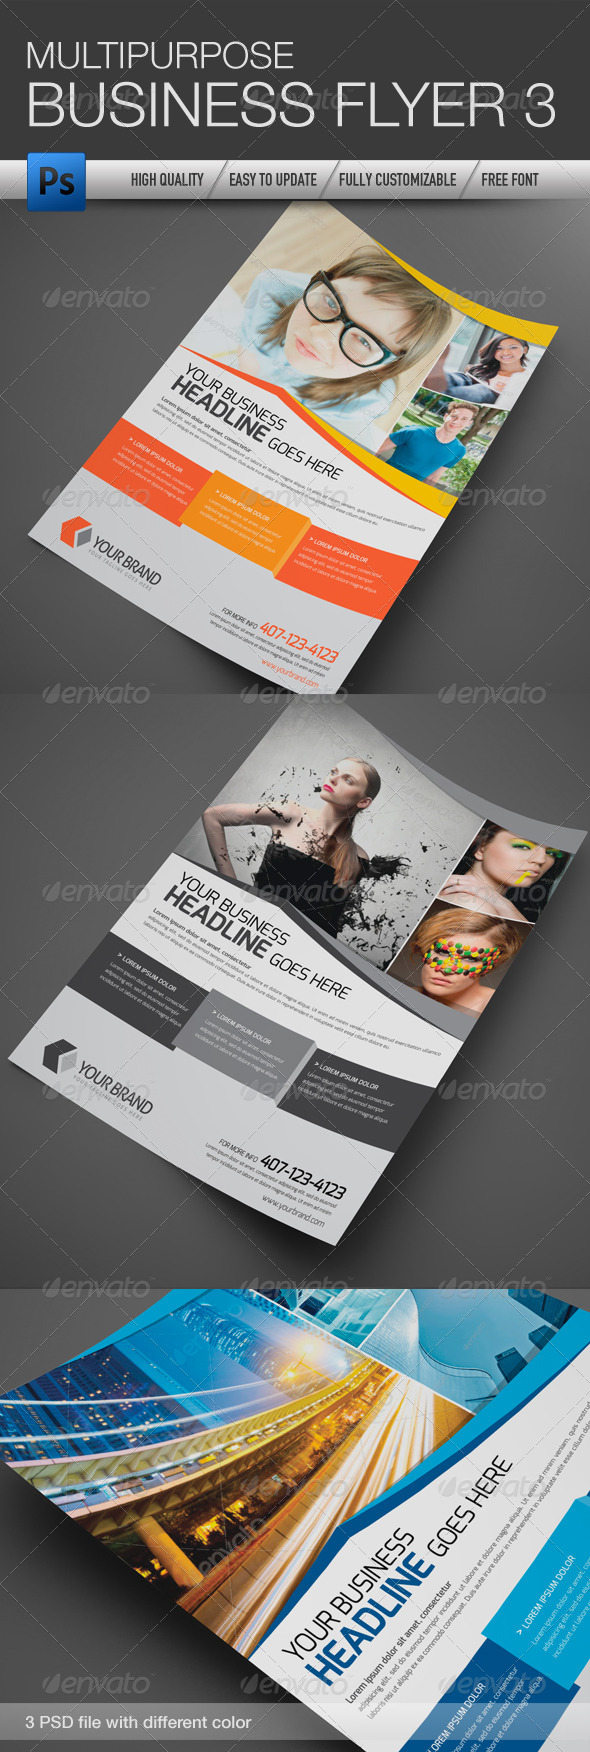 GraphicRiver Multipurpose Business Flyer 3 4673296